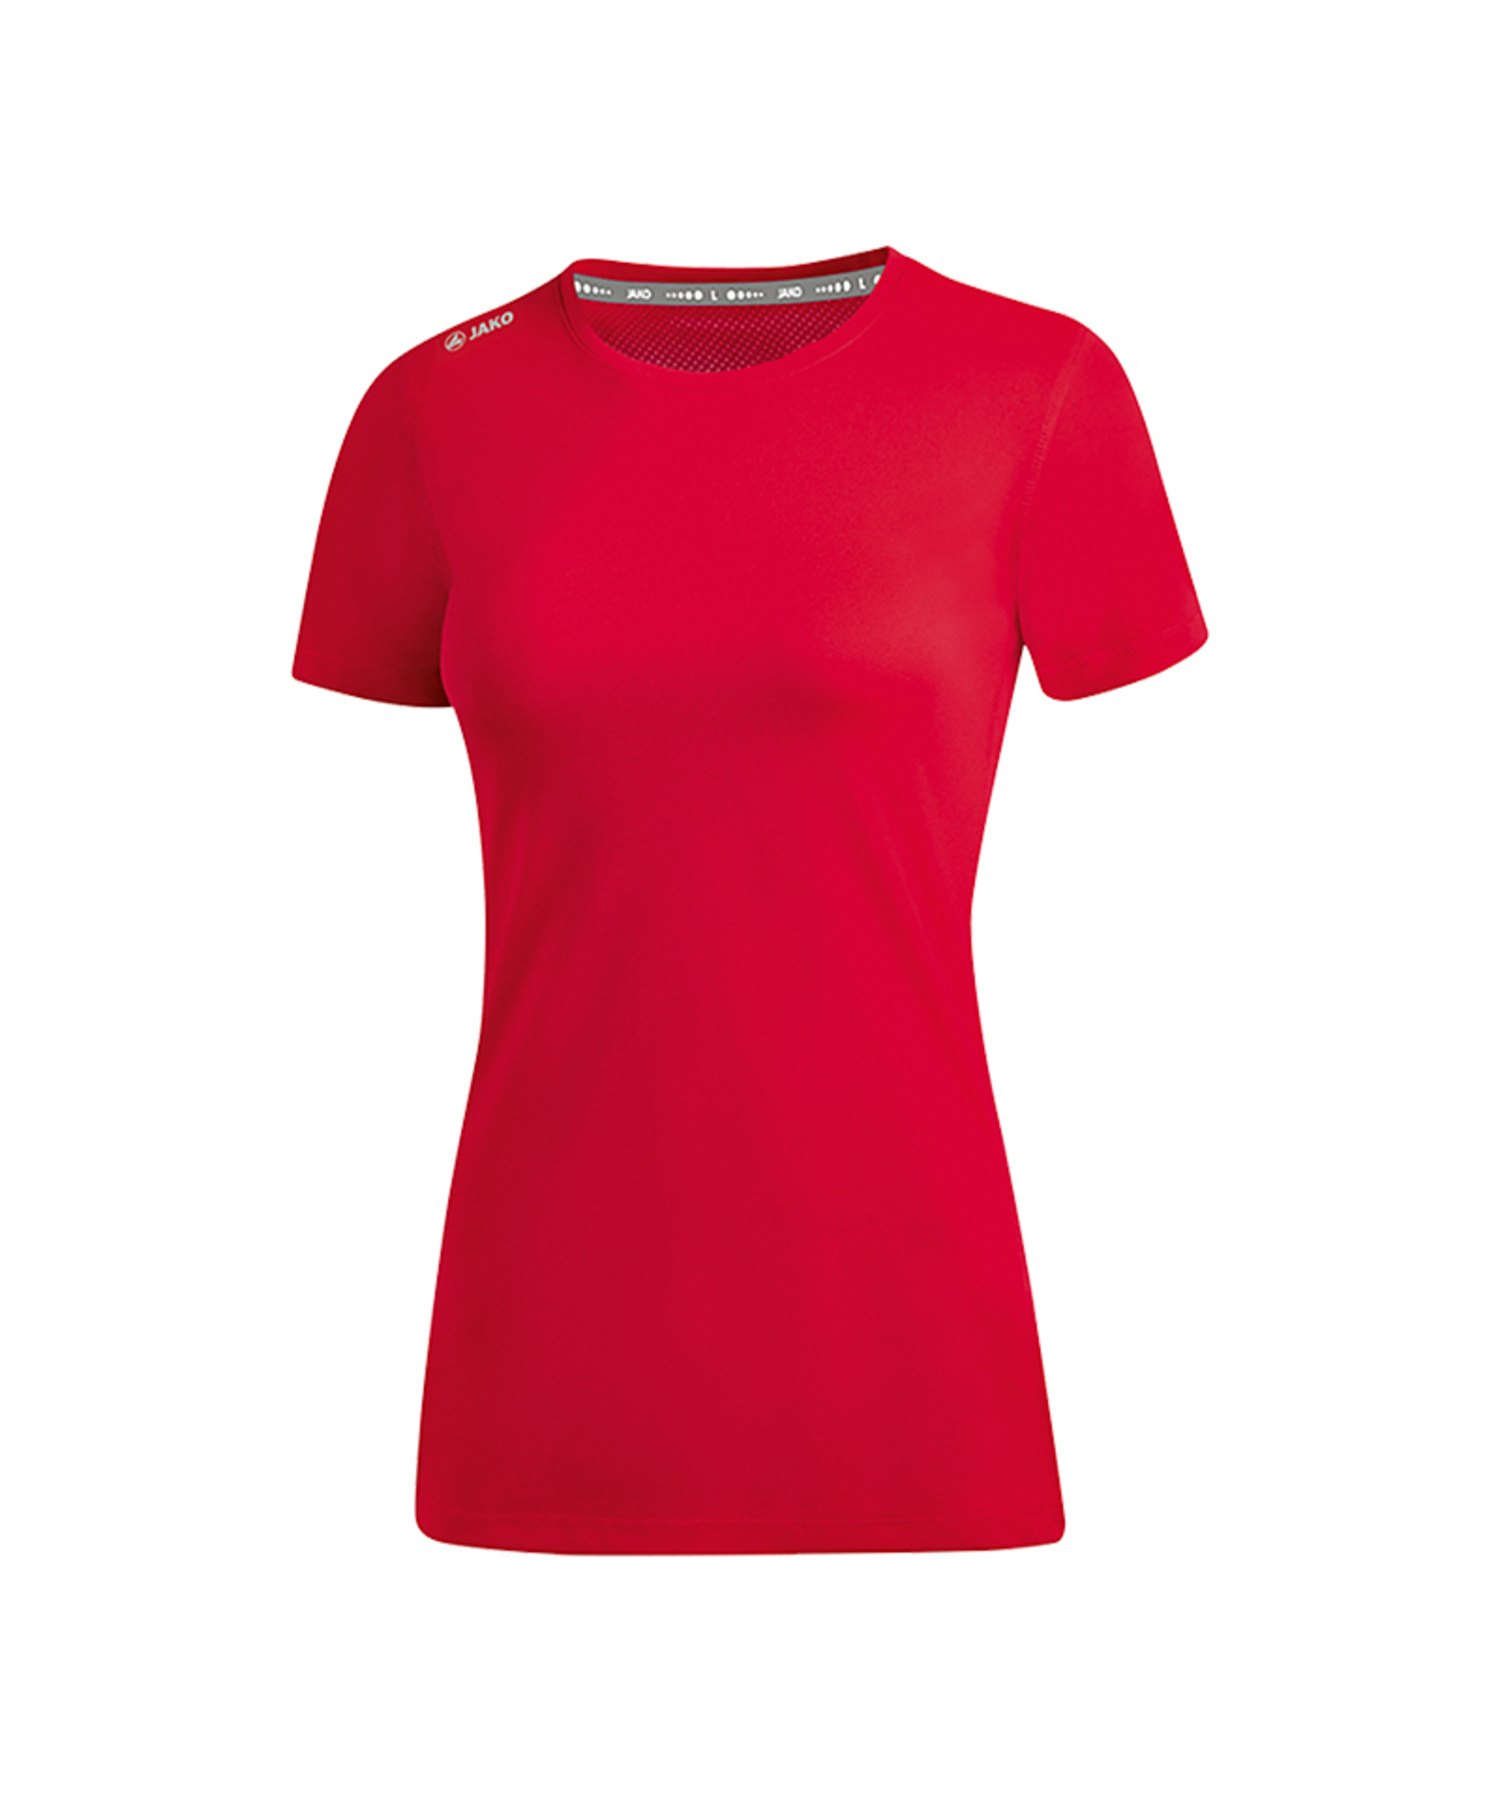 Jako Run 2.0 T-Shirt Running Damen Rot F01 - Rot